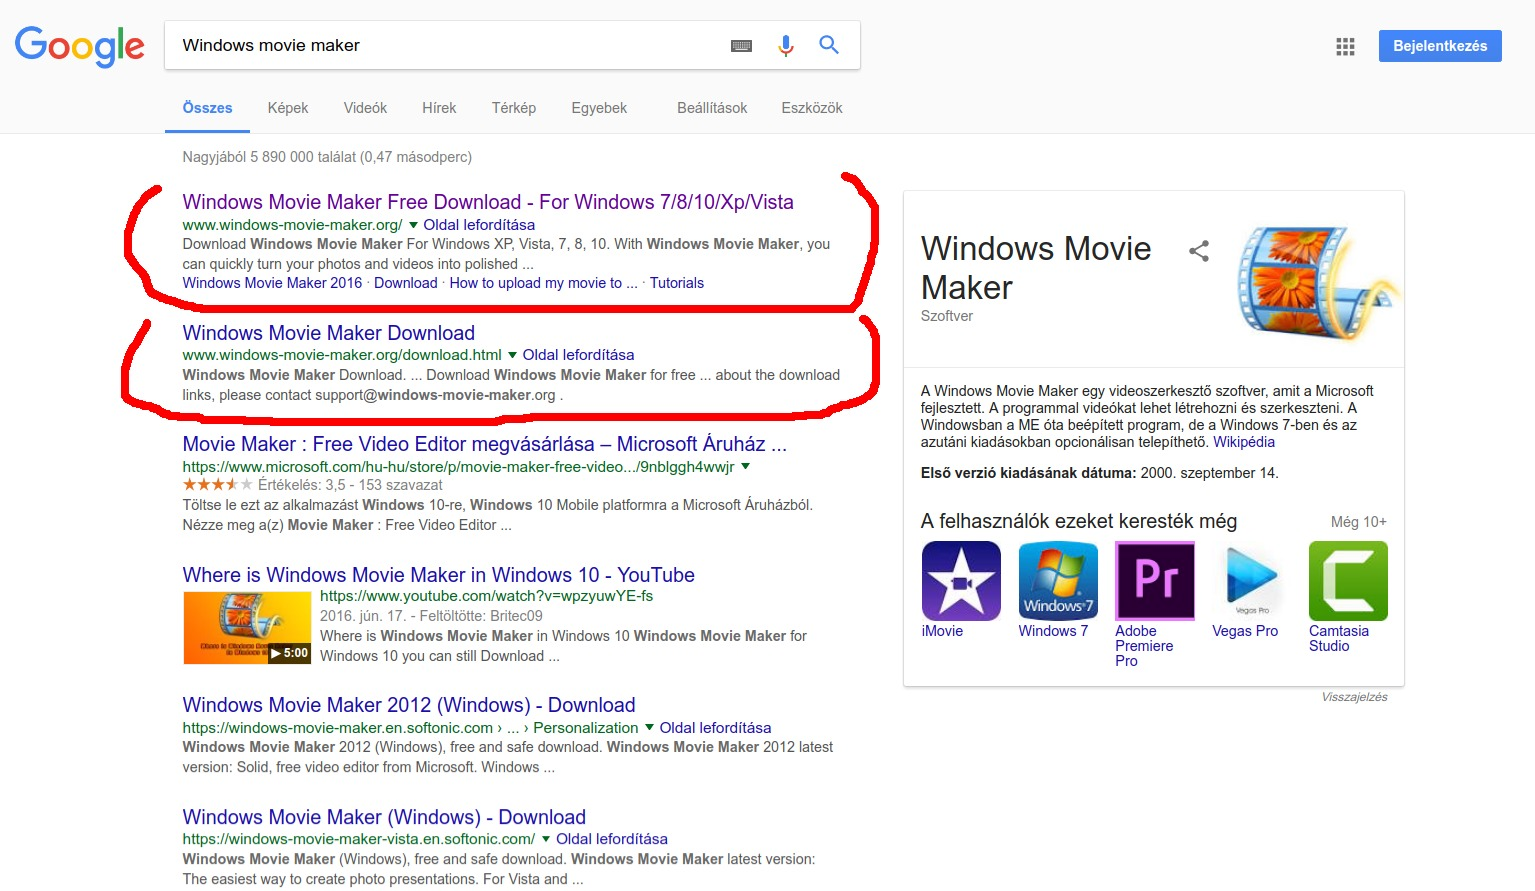 how to uninstall windows movie maker for win 10